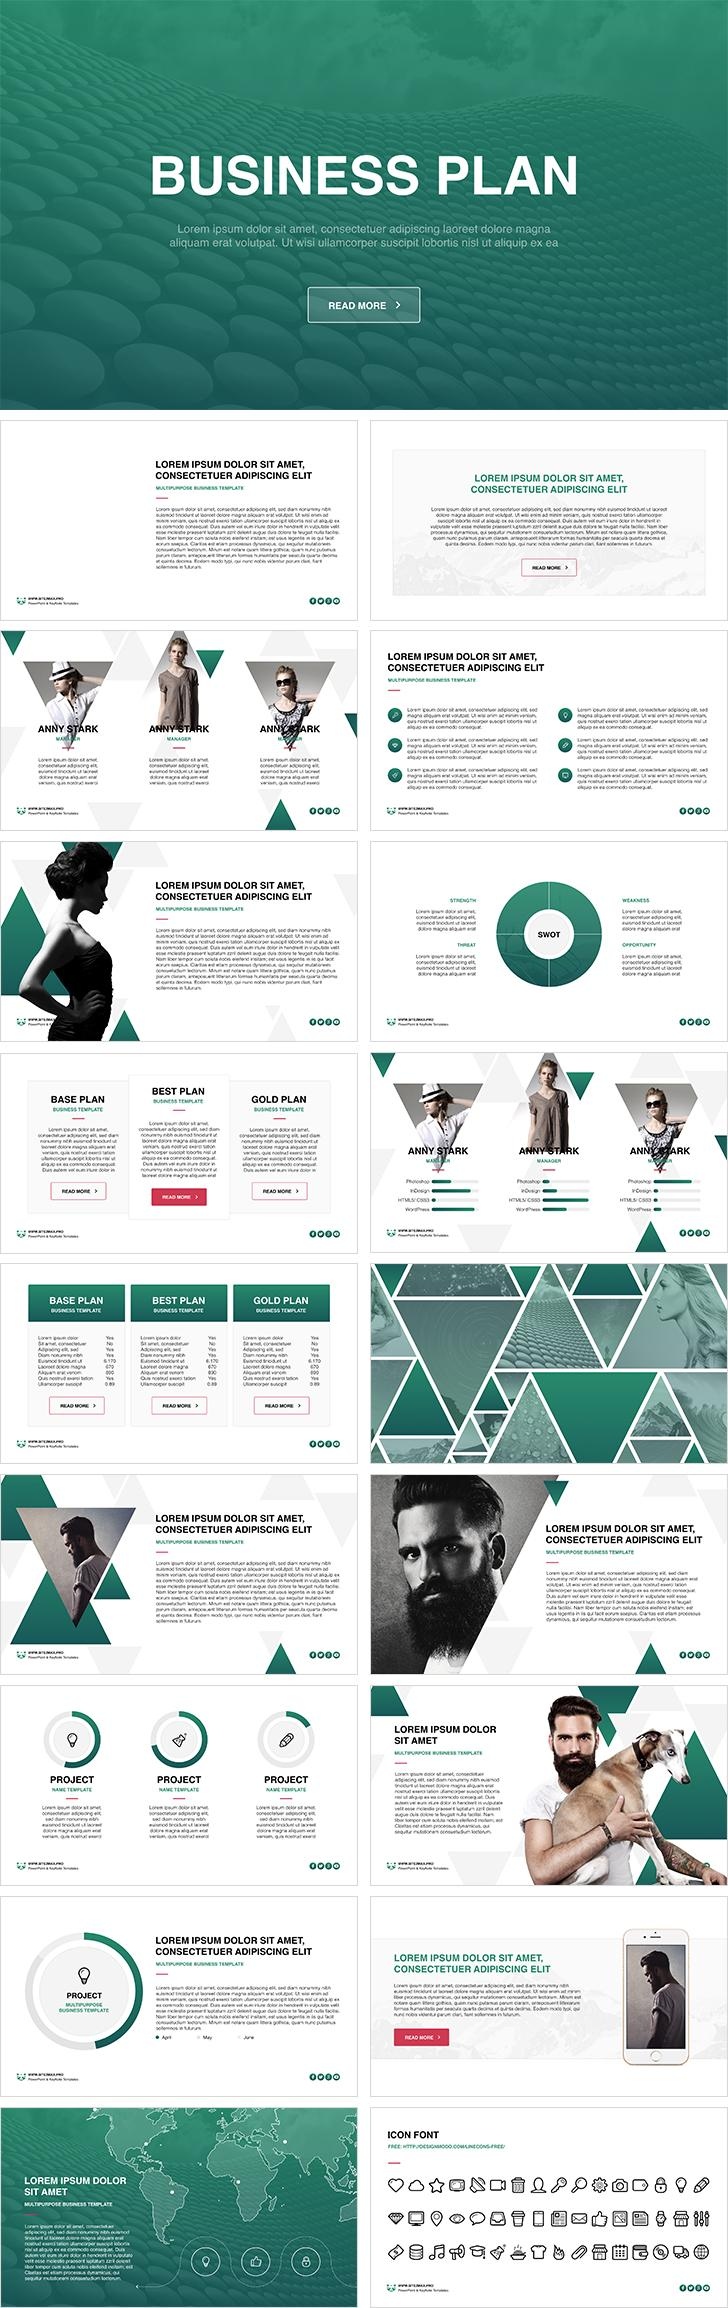 Business Plan Keynote Template Free Download